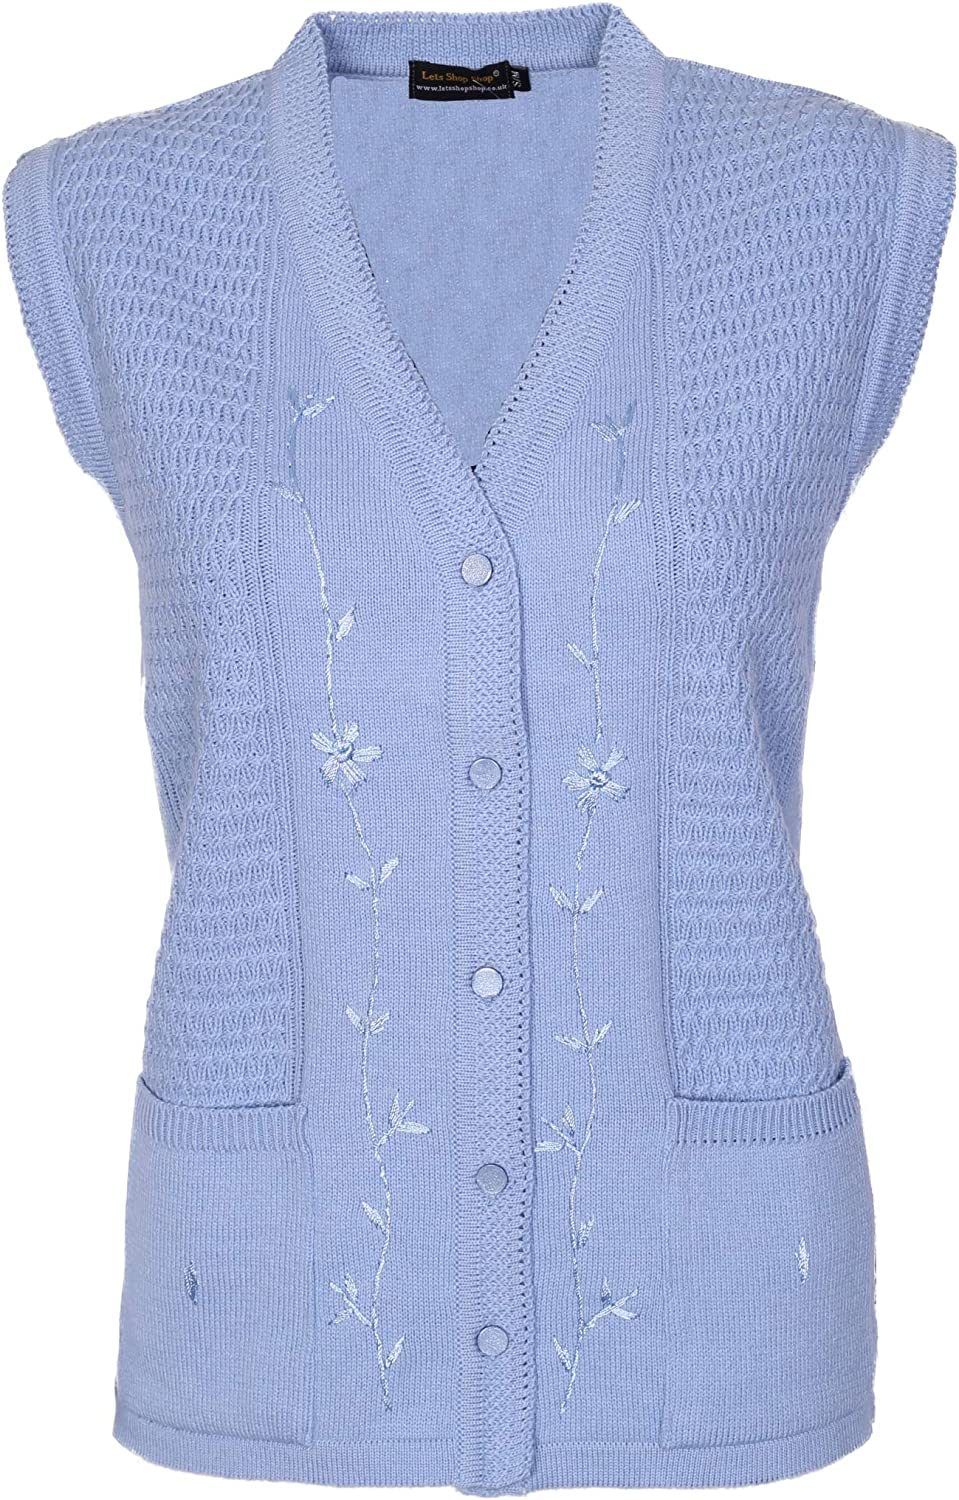 LADIES WOMENS NEW KNITTED EMBROIDERED CARDIGAN JUMPER SIZE 14 16 18 20